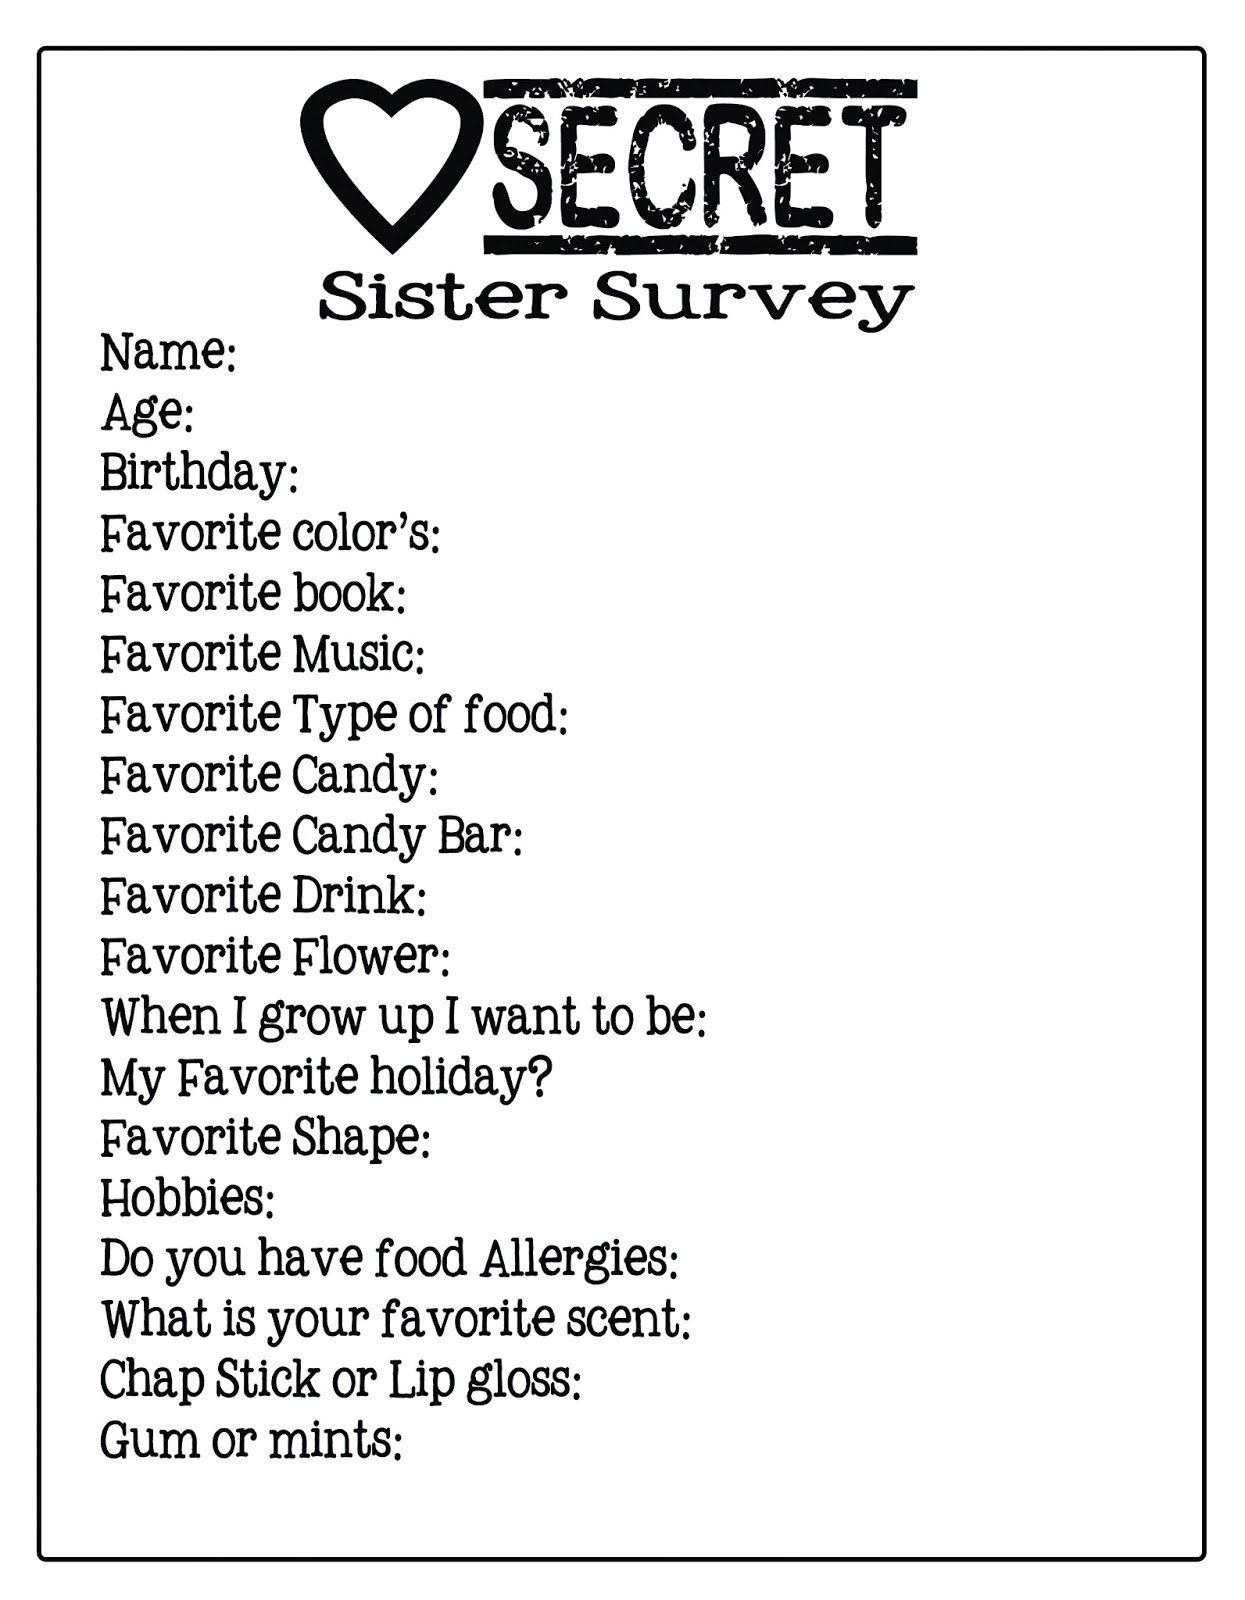 Secret Pal Questionnaire Form Sign-up Sheet | Secret santa, Secret ...